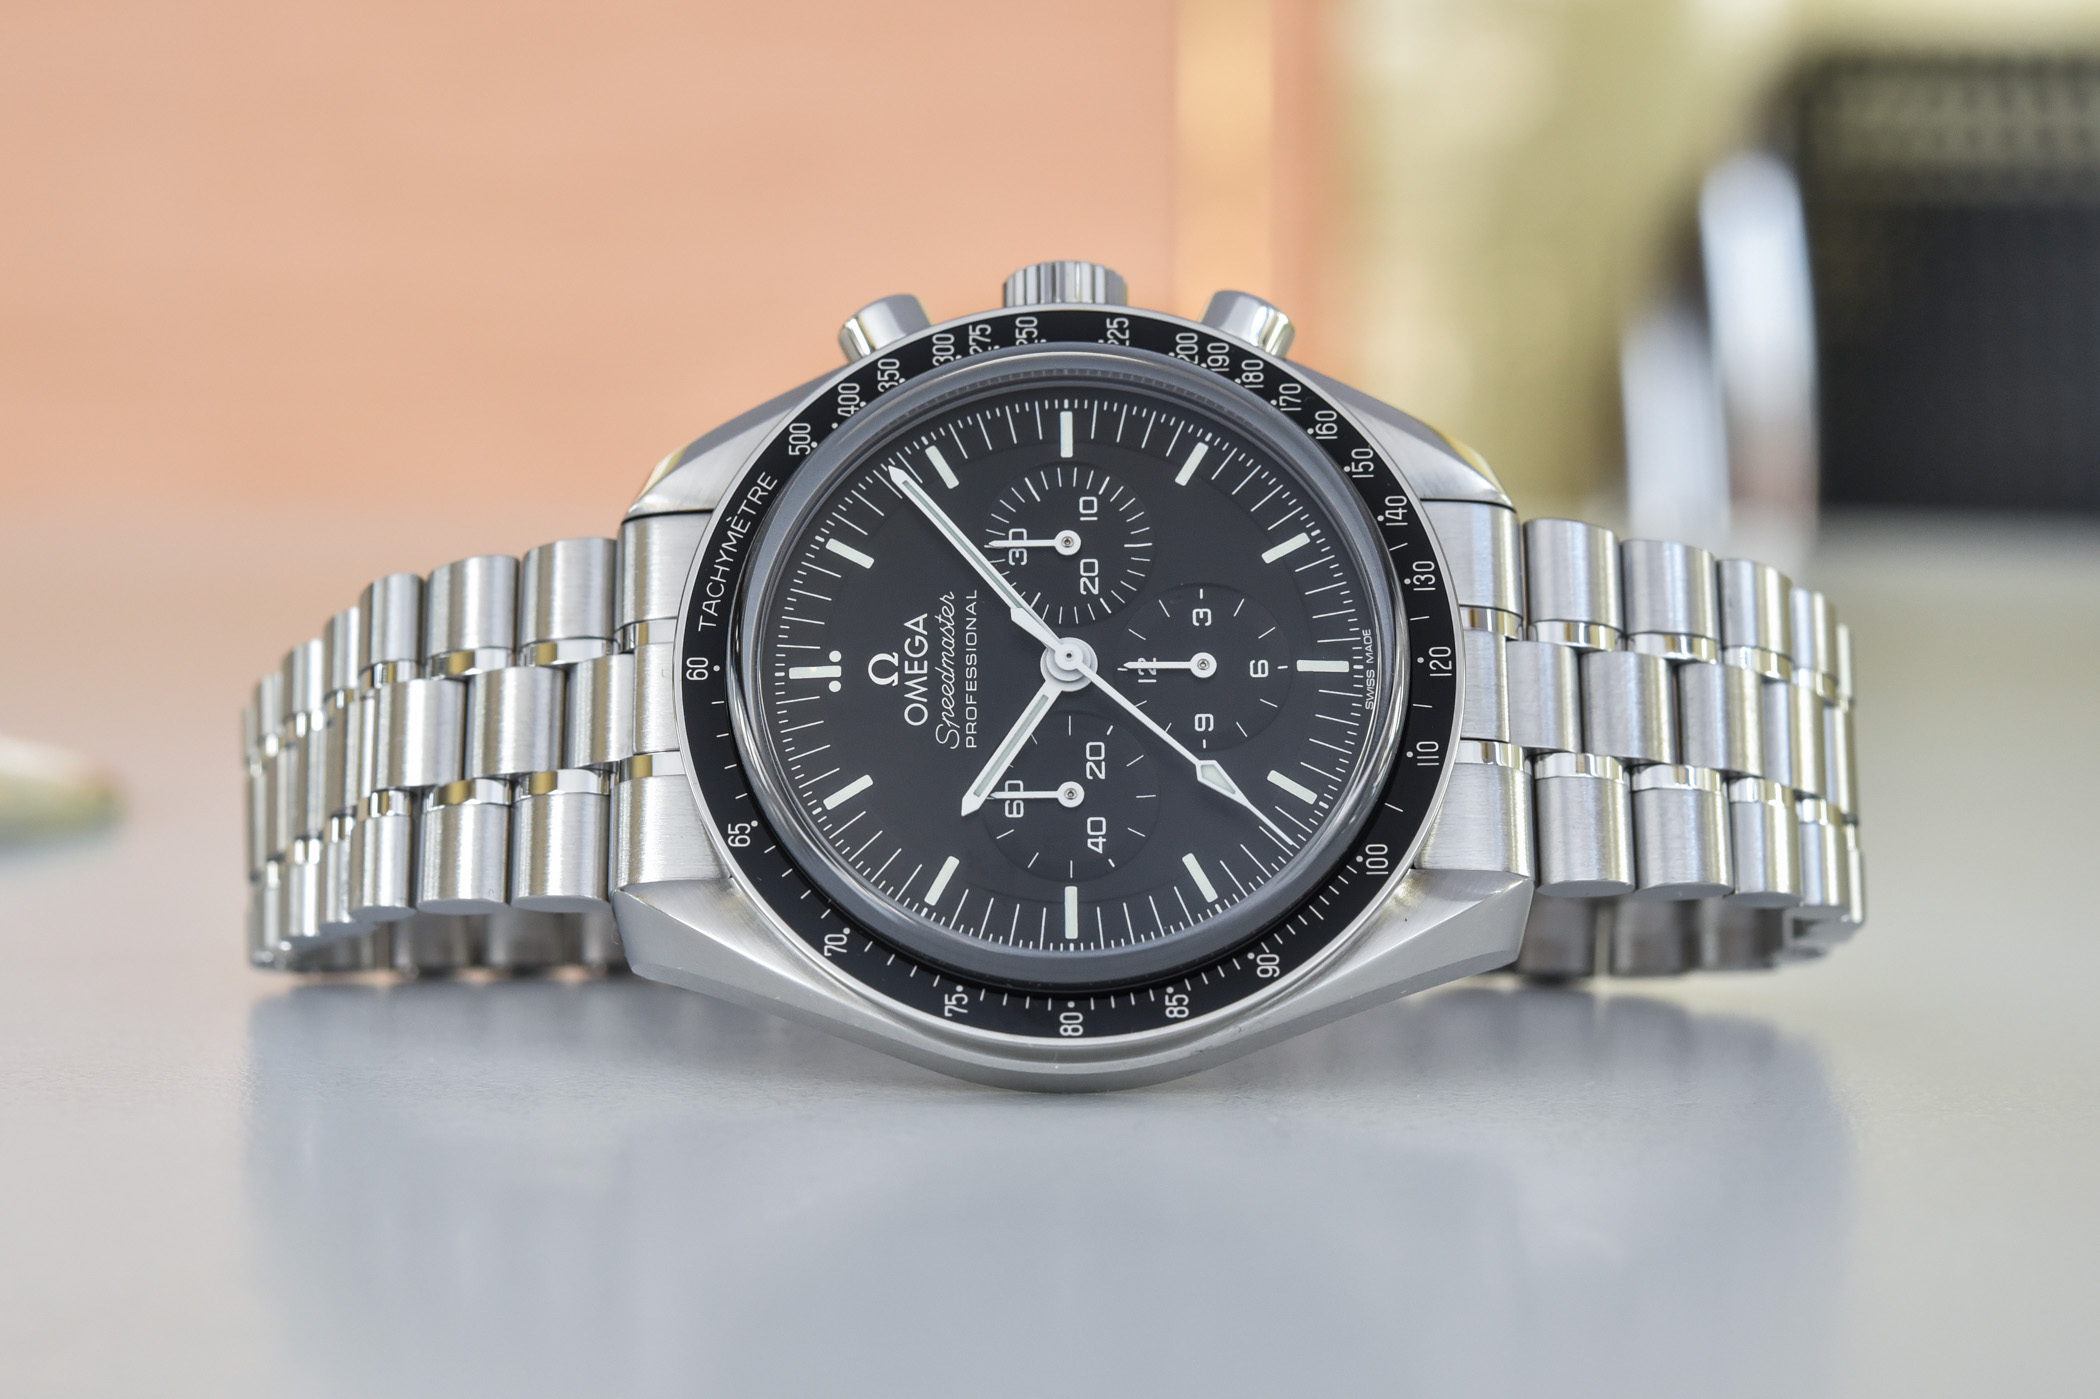 Omega Speedmaster Moonwatch Professional Master Chronometer Co-Axial 2021 - review - 24